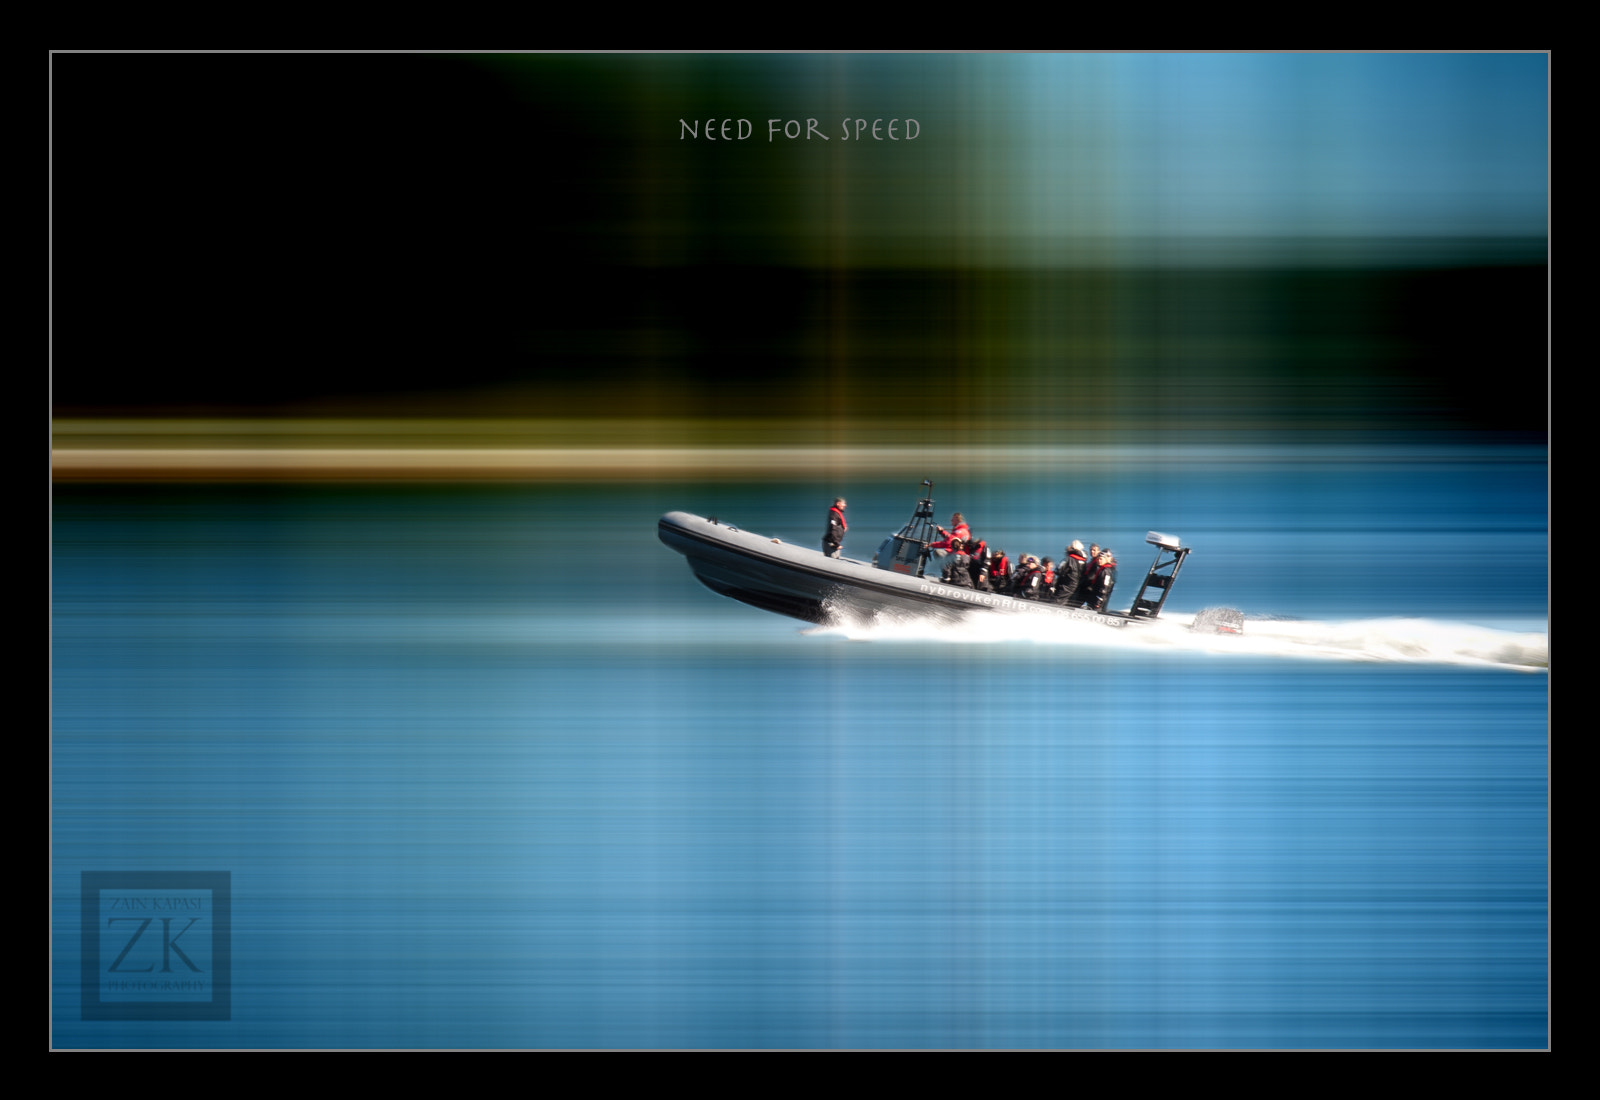 Photograph Need for Speed by Zain Kapasi on 500px